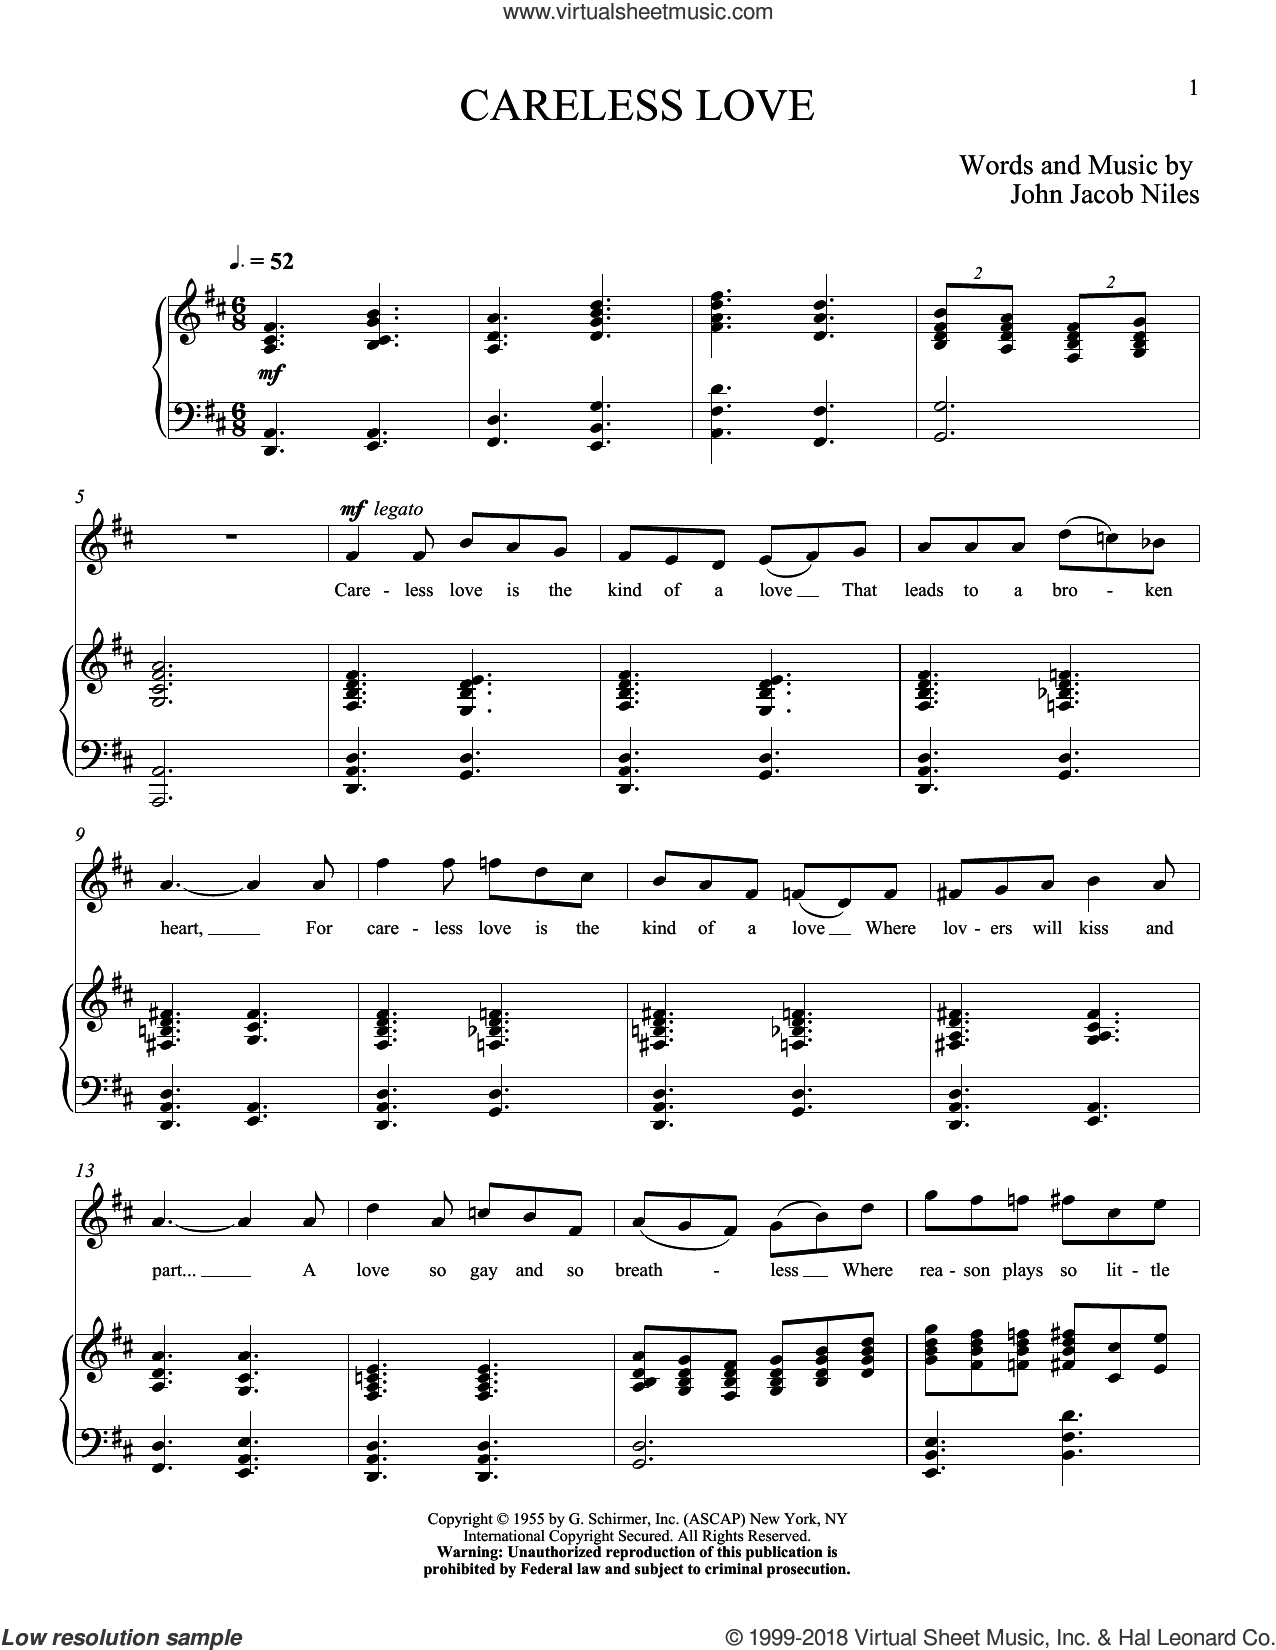 Careless Love sheet music for voice and piano (High Voice) by John Jacob Niles, intermediate skill level